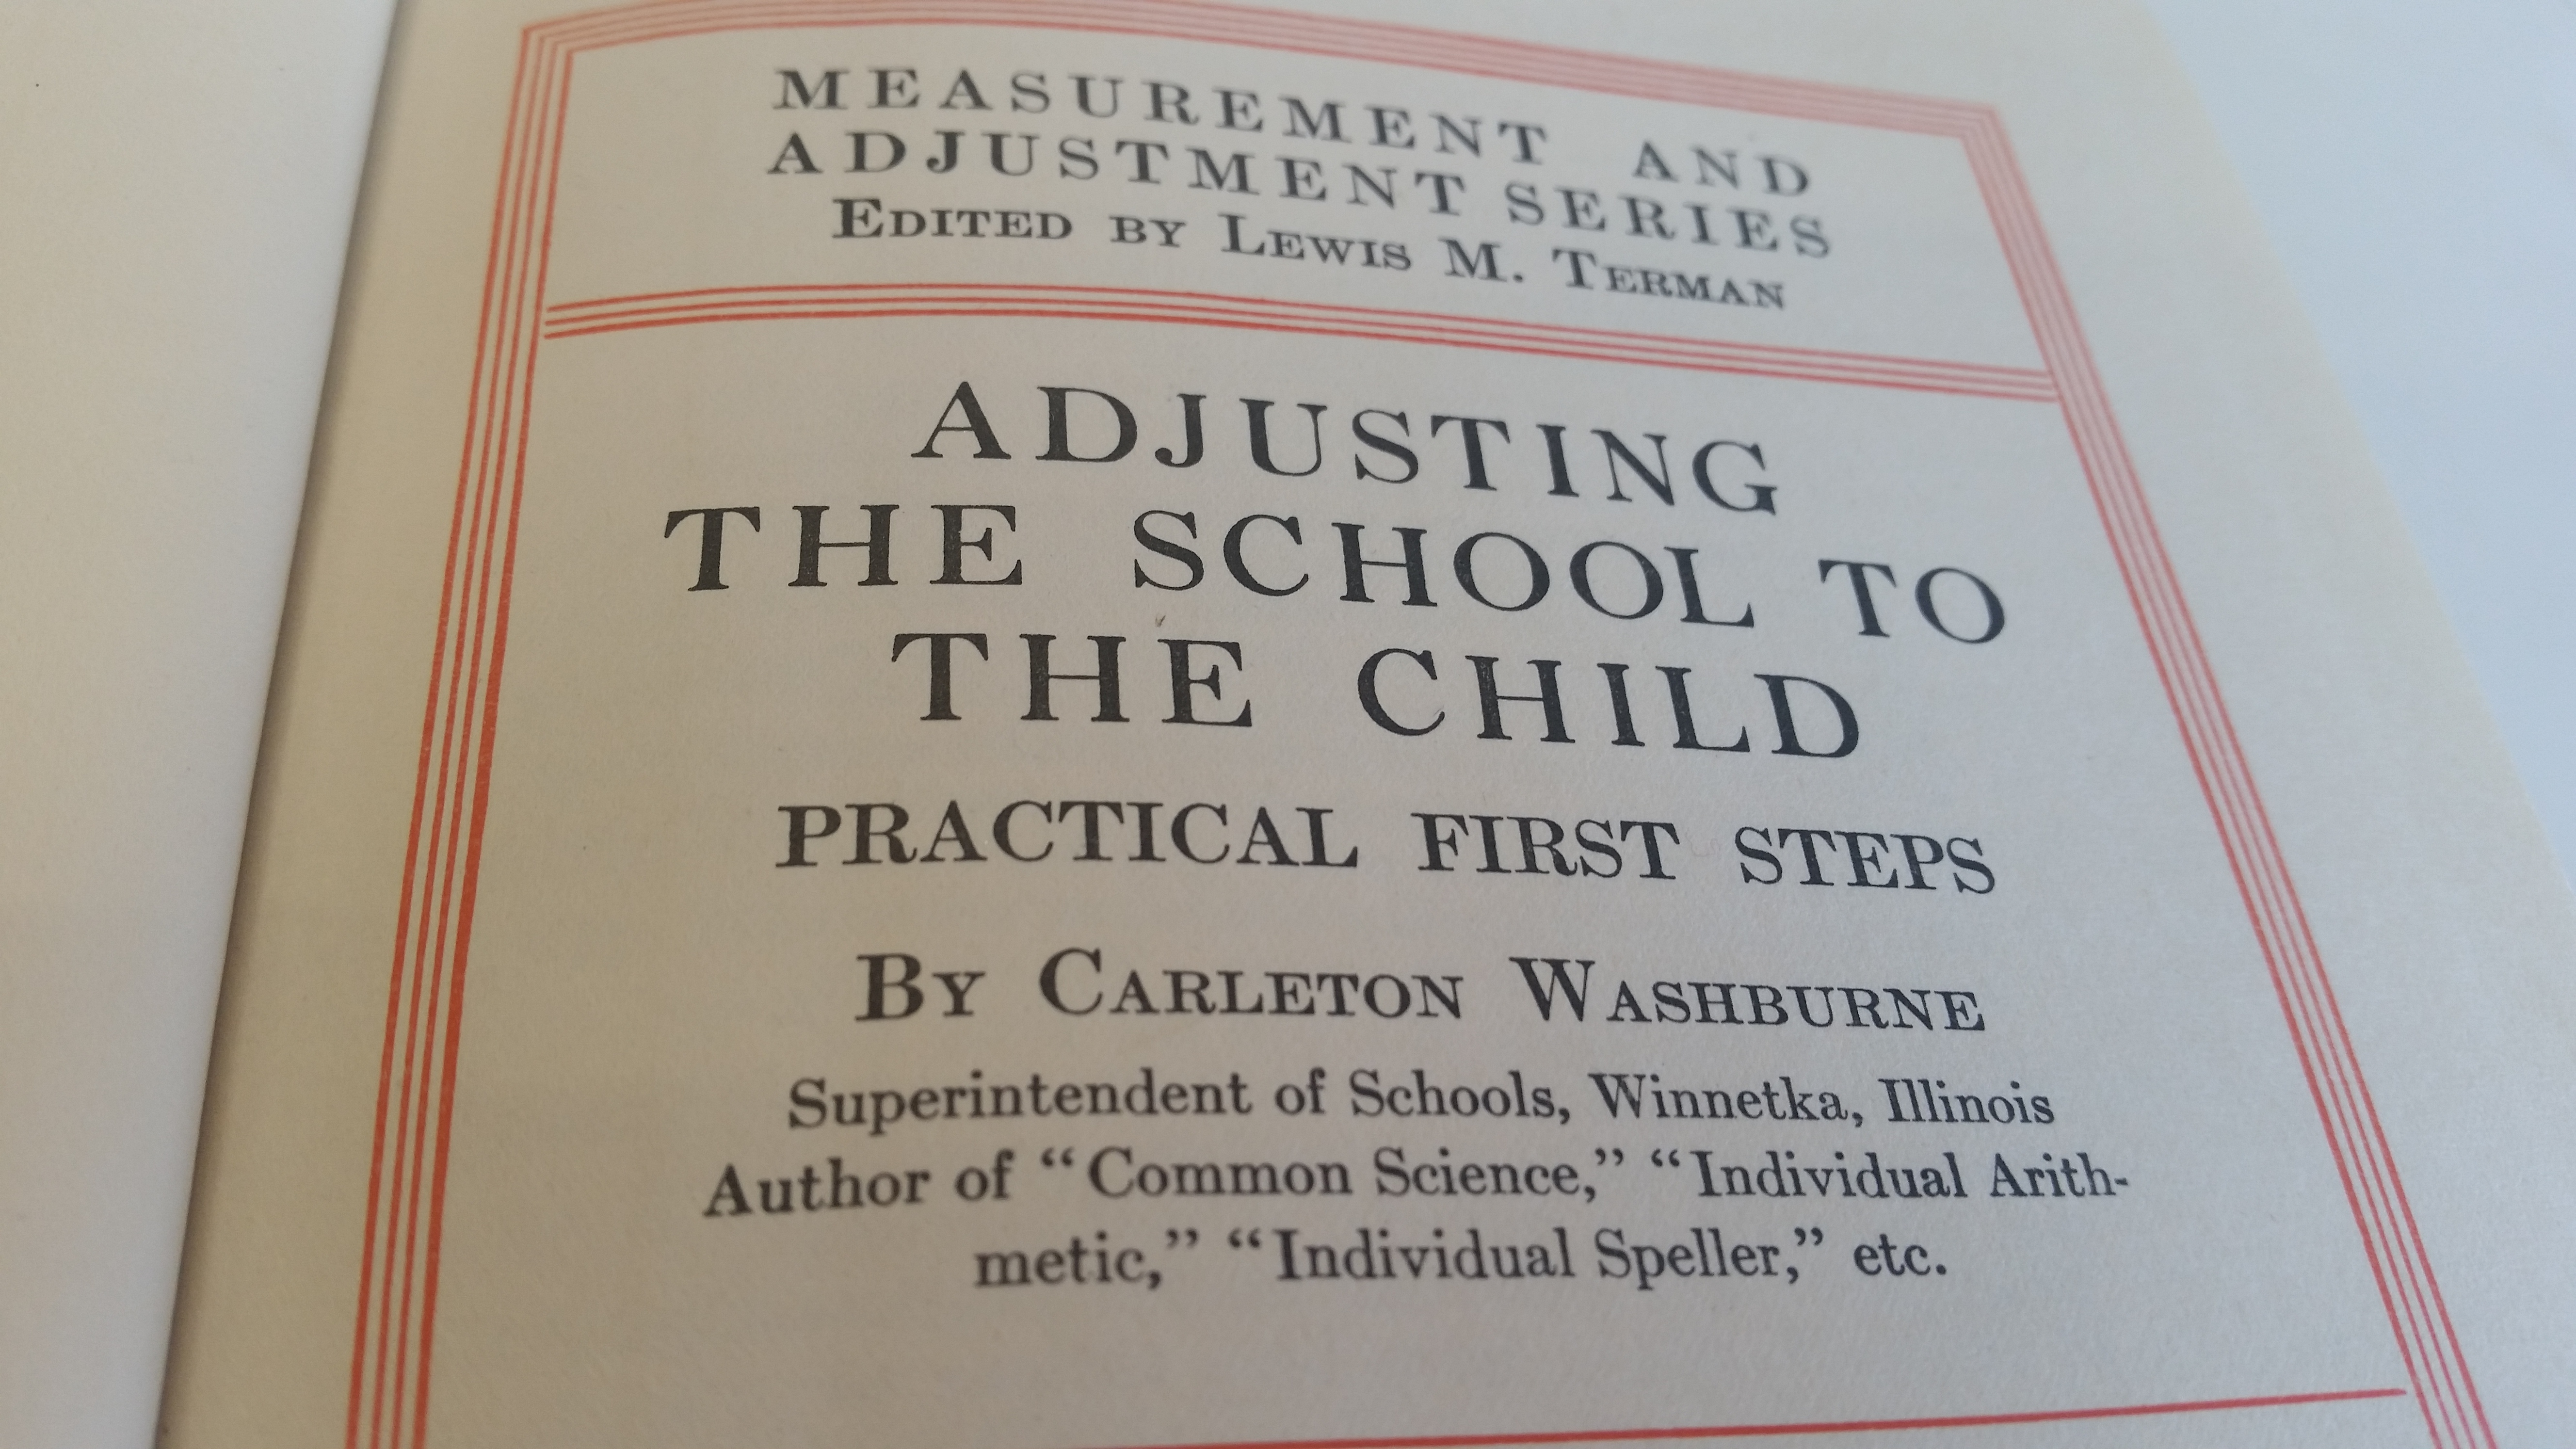 Adjusting the school to the child